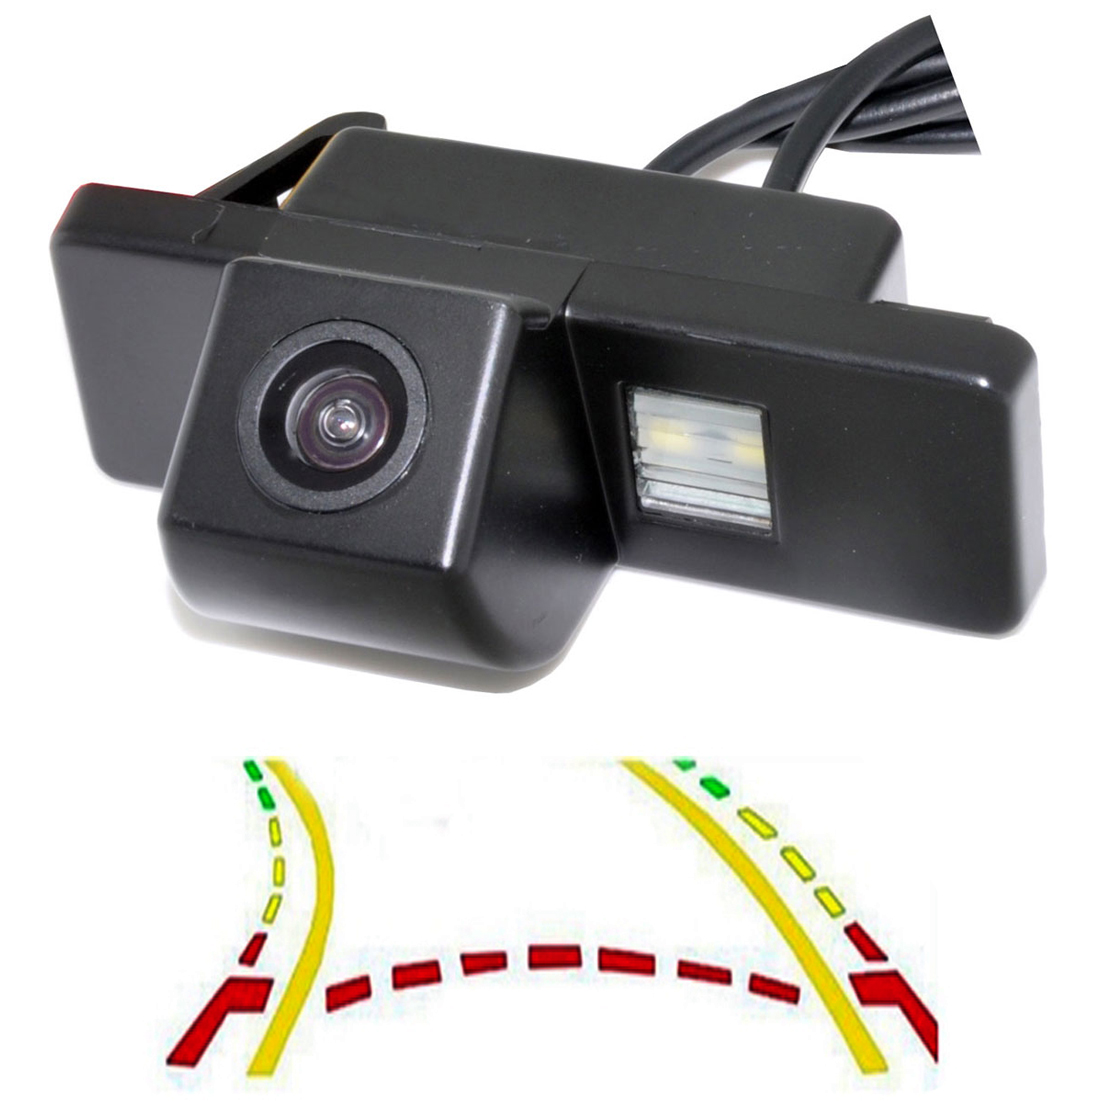 CCD  Intelligent Dynamic Trajectory Tracks Rear View Camera For NISSAN Juke QASHQAI/Geniss/Pathfinder/X-TRAIL Sunny